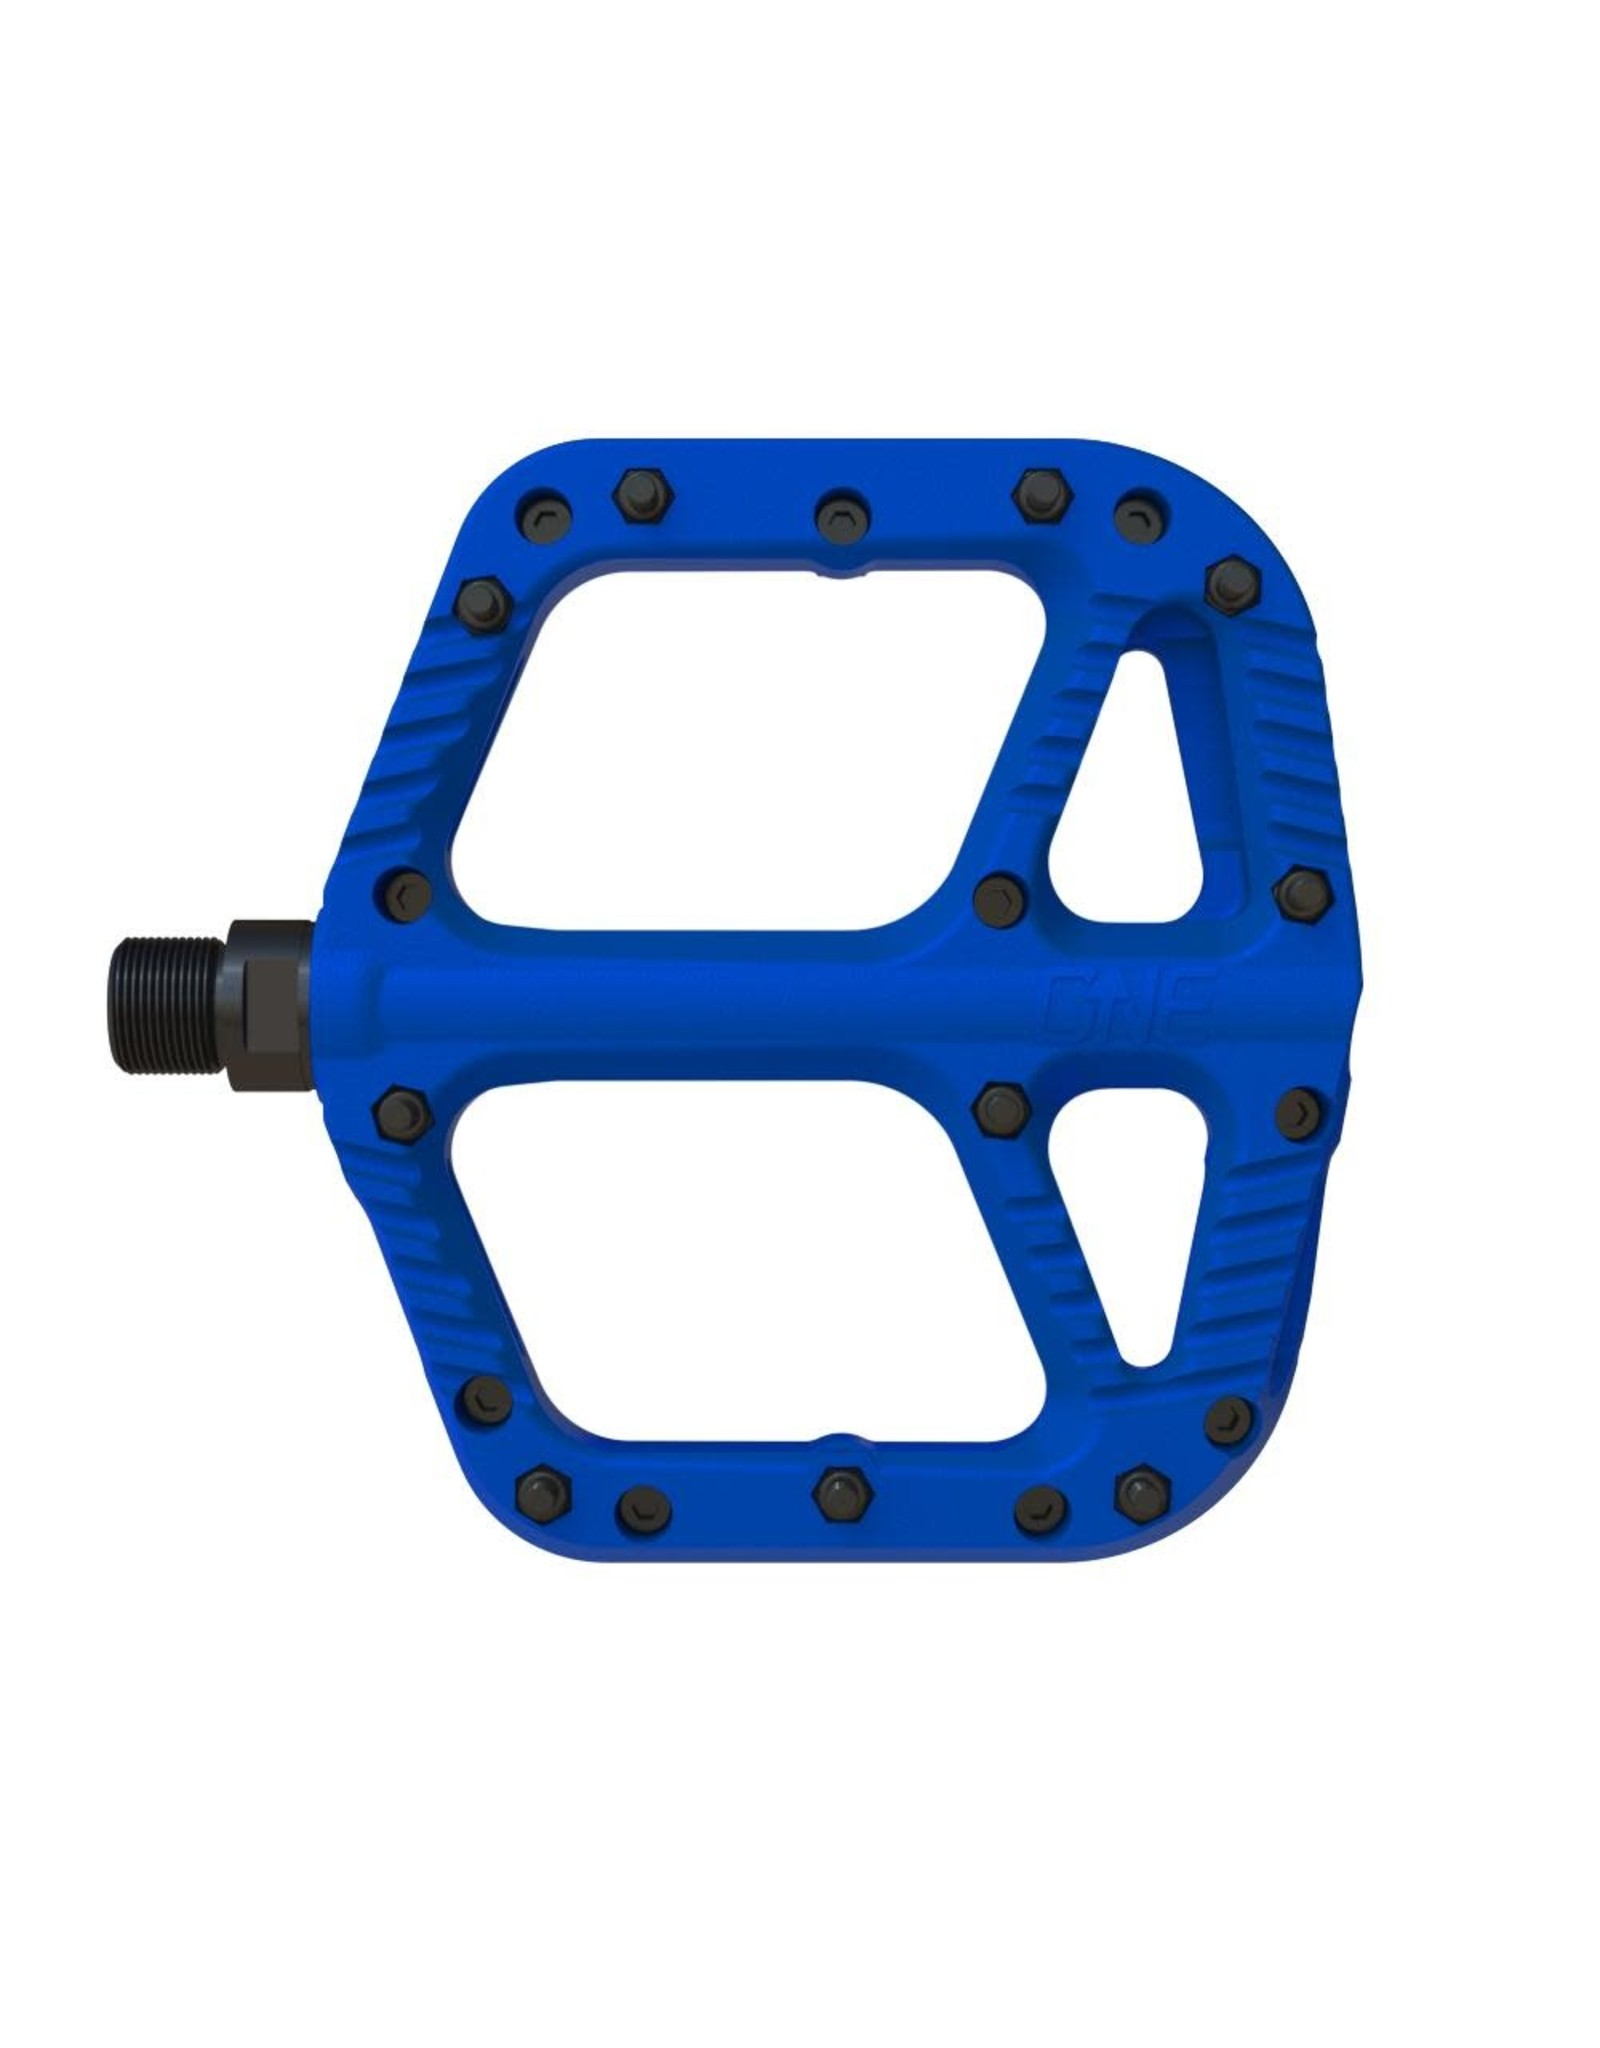 OneUp OneUp Composite Flat Pedals